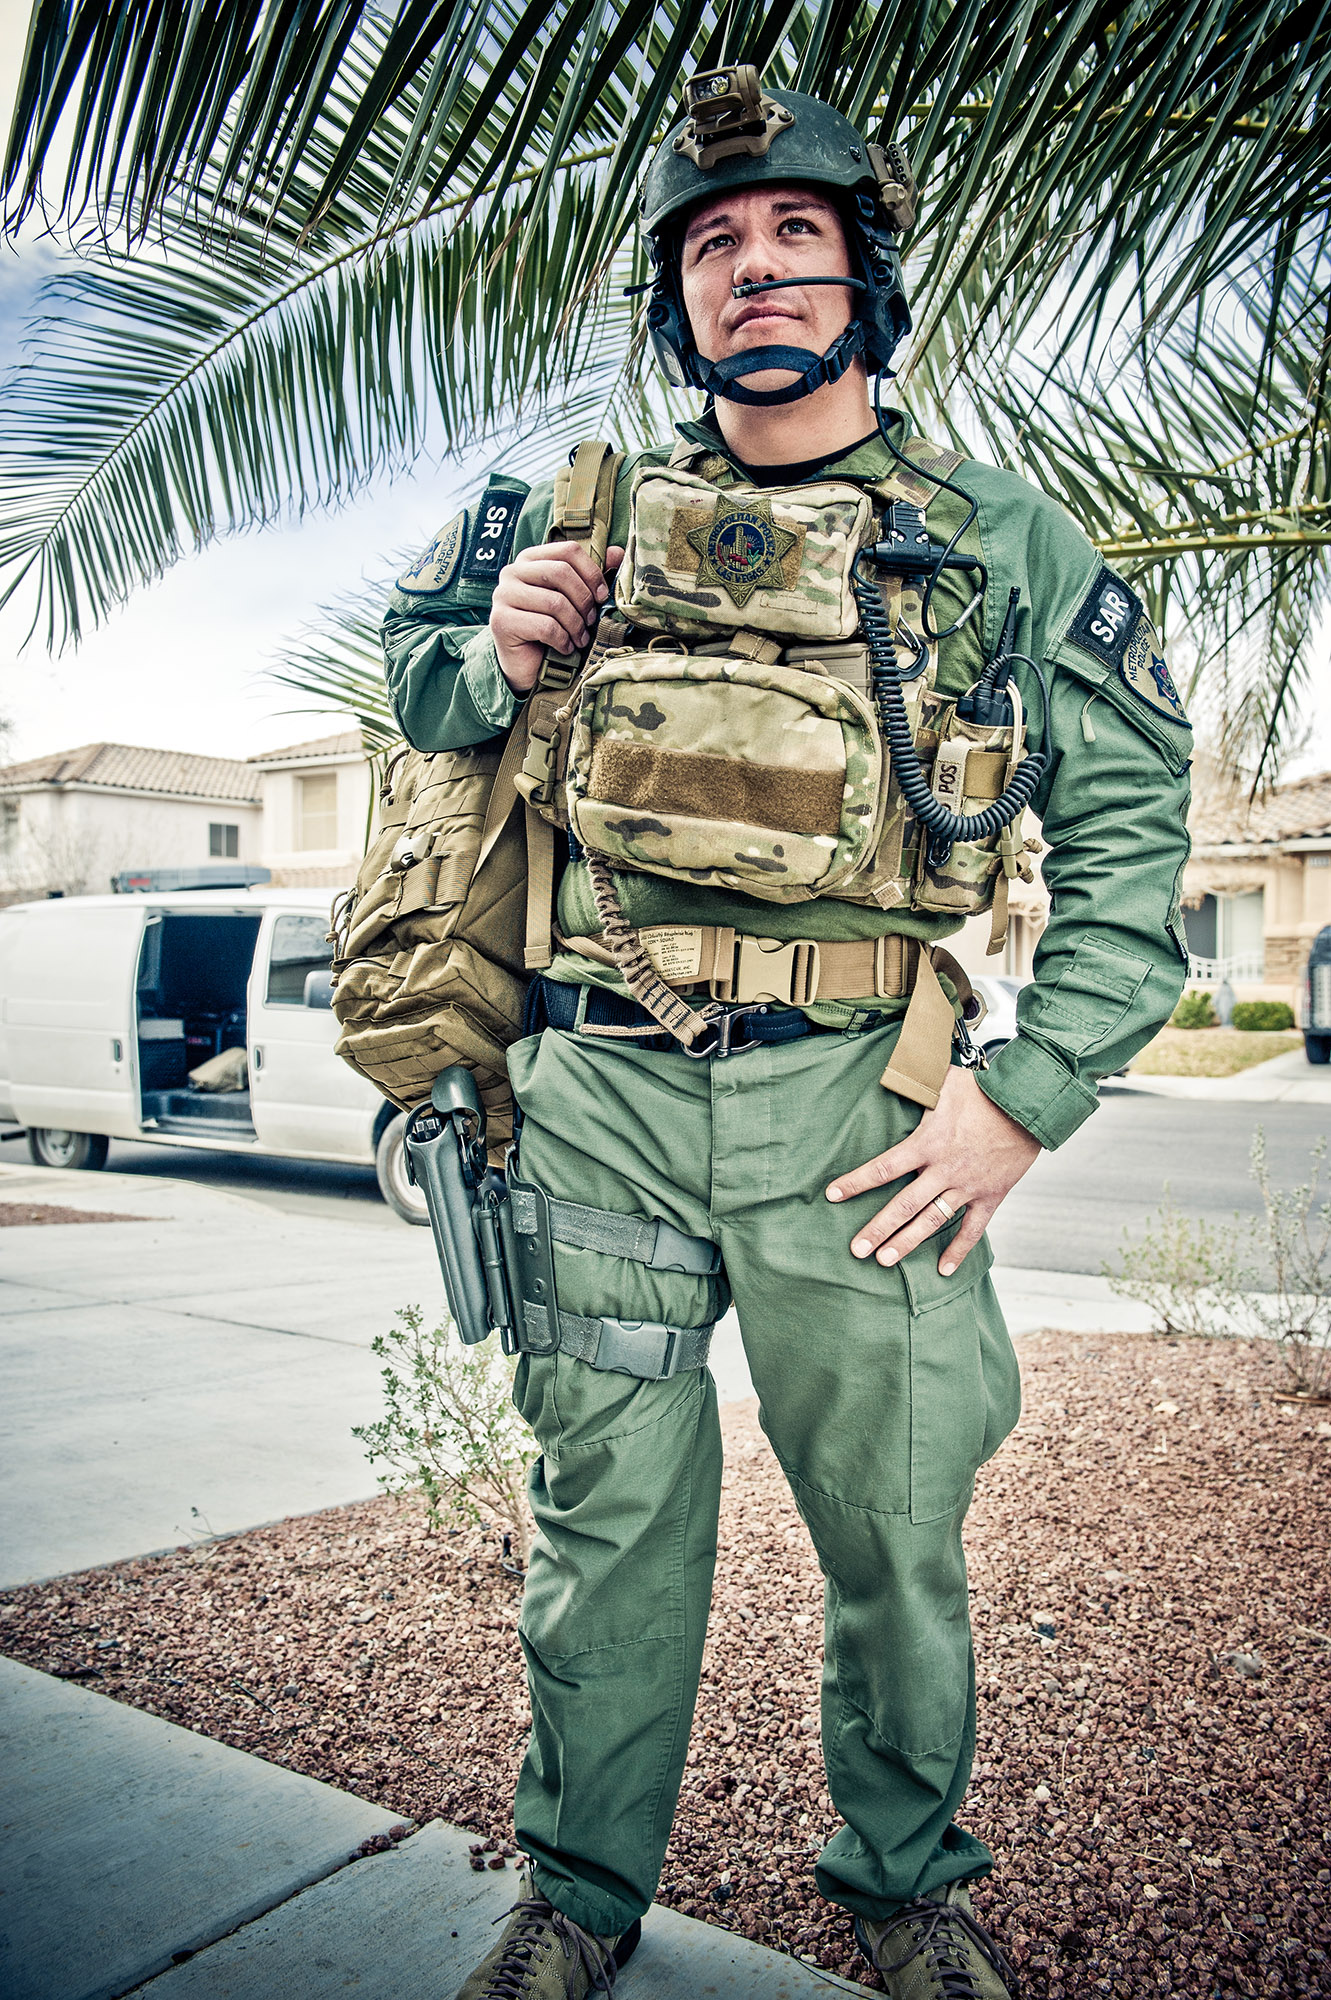 Officer David Vanbuskirk, 36, of Henderson, Nevada, was killed on July 23, 2013, when he fell during a nighttime aerial rescue mission in Las Vegas, Nevada. Vanbuskirk had been employed with the Las Vegas Metropolitan Police Department since 1999 and joined the elite Search and Rescue Team in 2007.  Vanbuskirk is survived by his wife, Adriana; sister, Jenny; and mother, Pat. He is preceded in death by his father, Red; and brother; Michael.